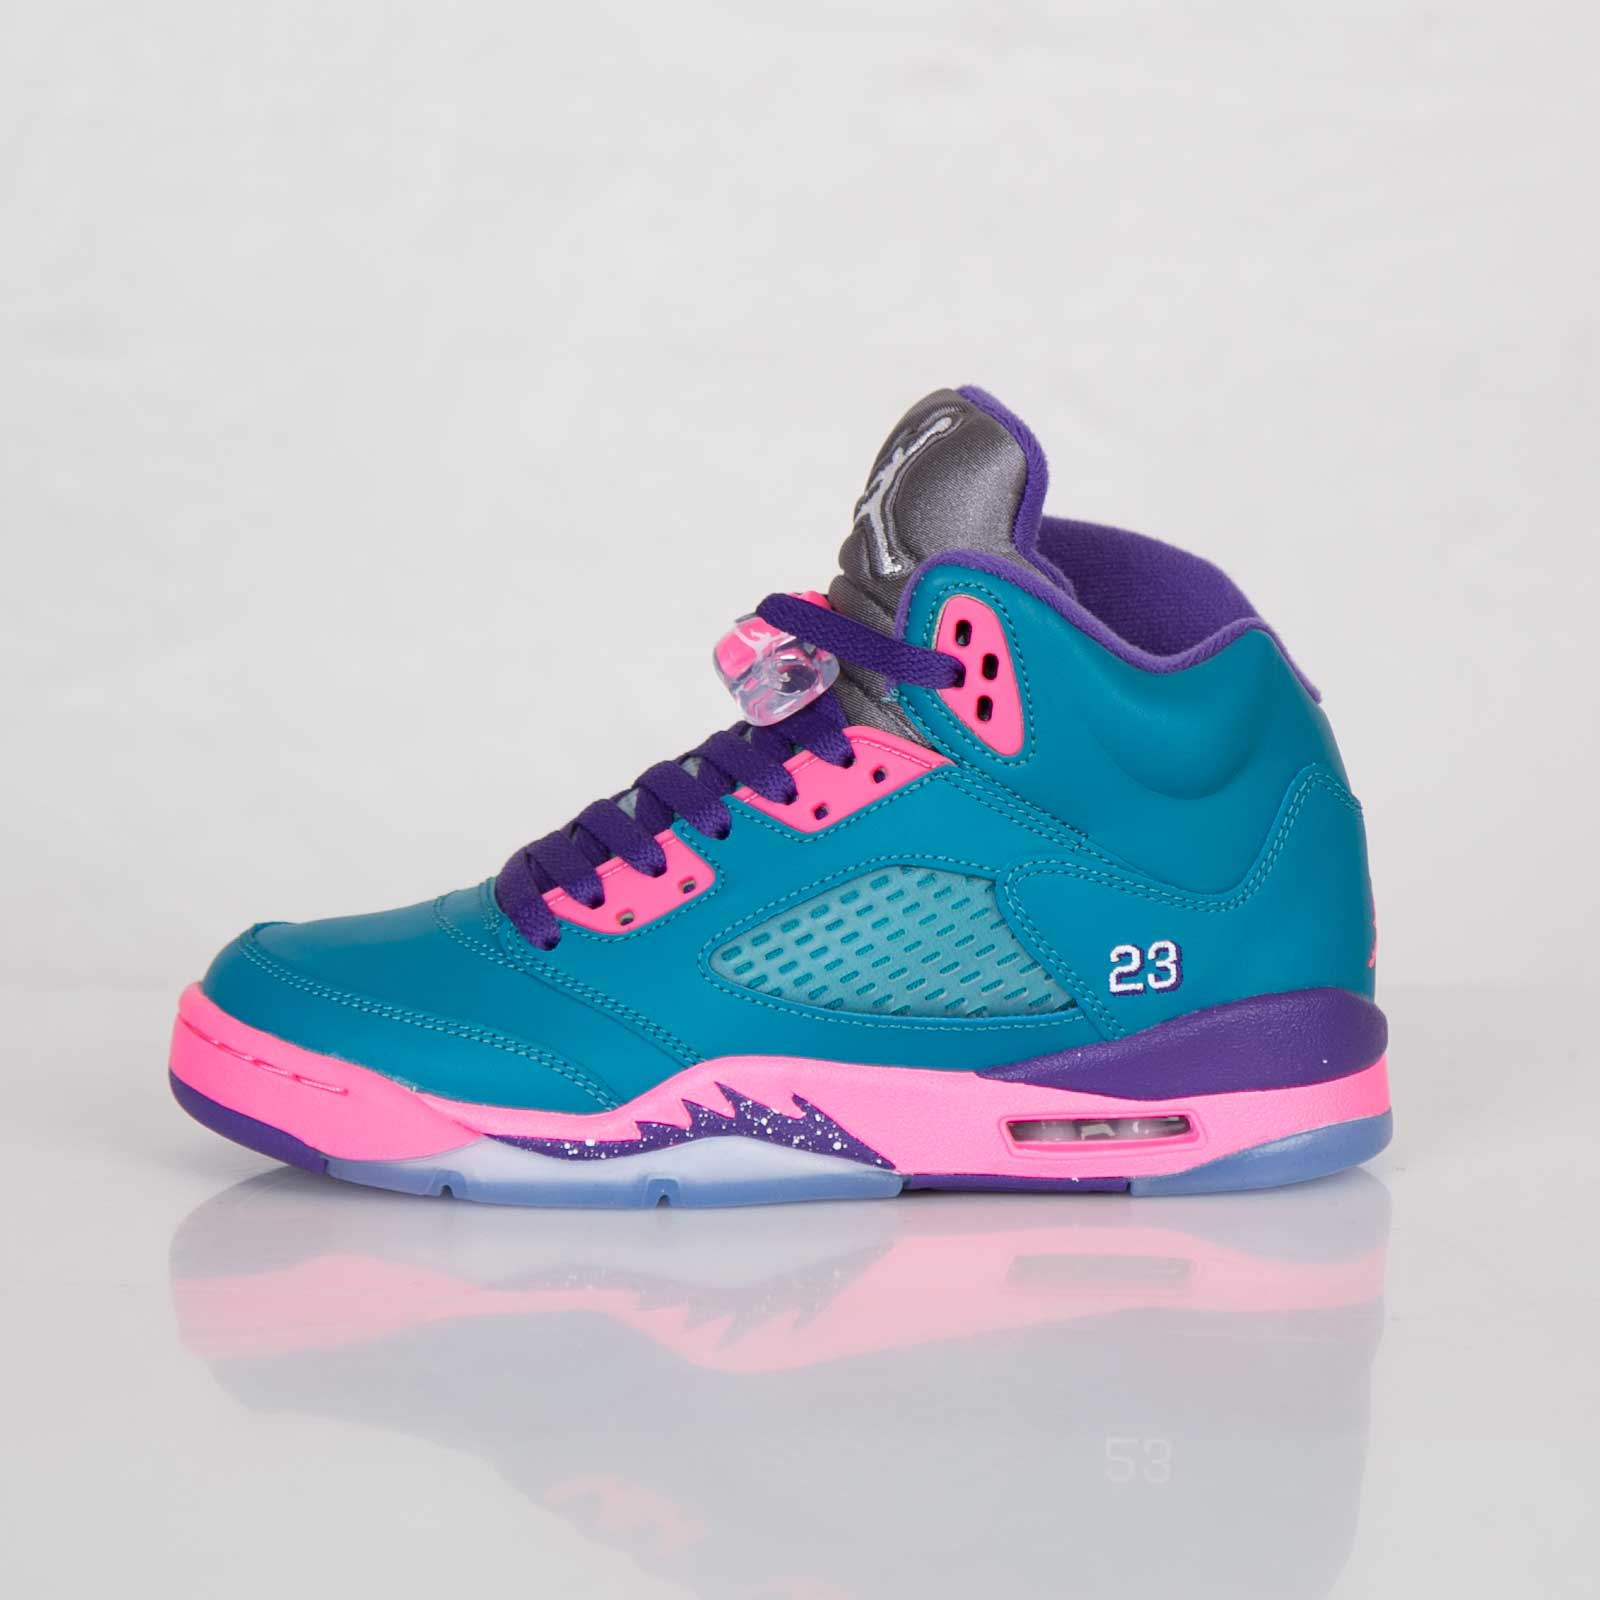 96caa2b1b9c65 Jordan Brand Girls Air Jordan 5 Retro (GS) - 440892-307 - Sneakersnstuff